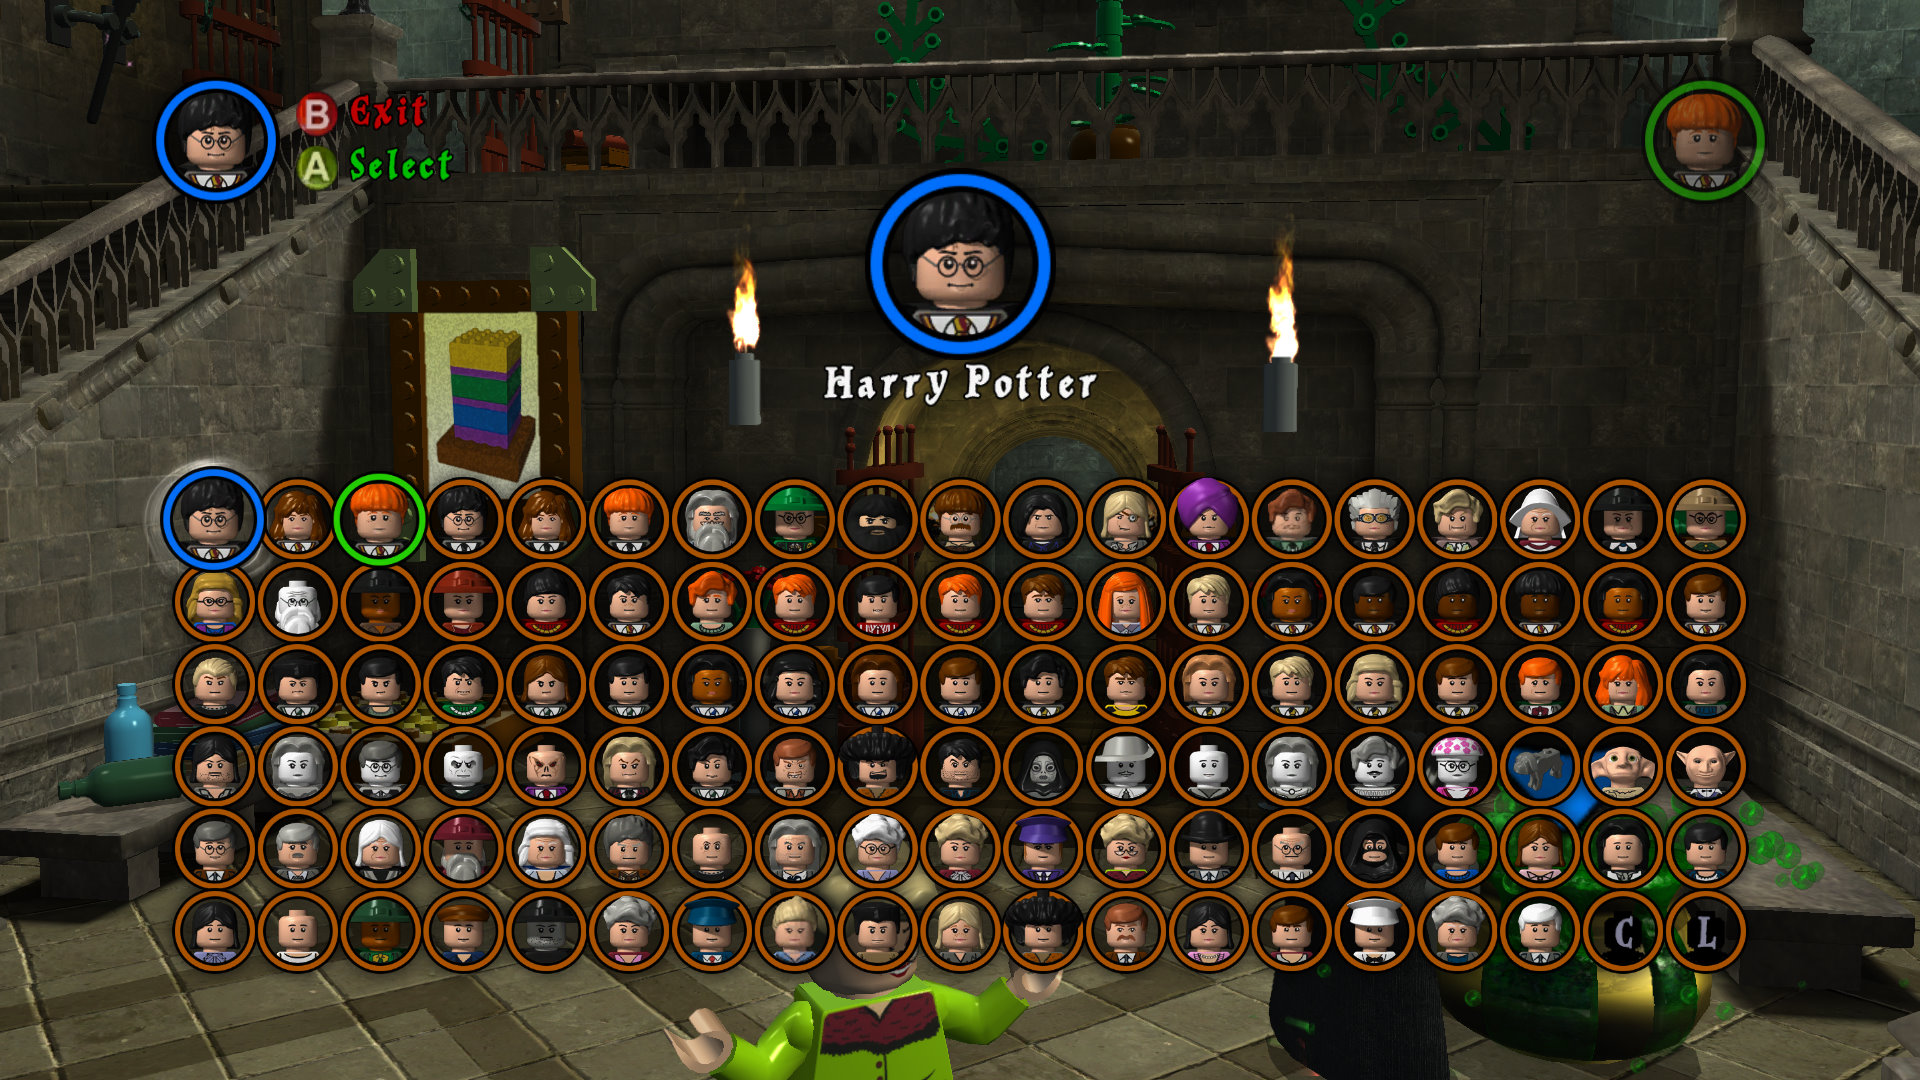 Lego Harry Potter Characters The GAMES Blog